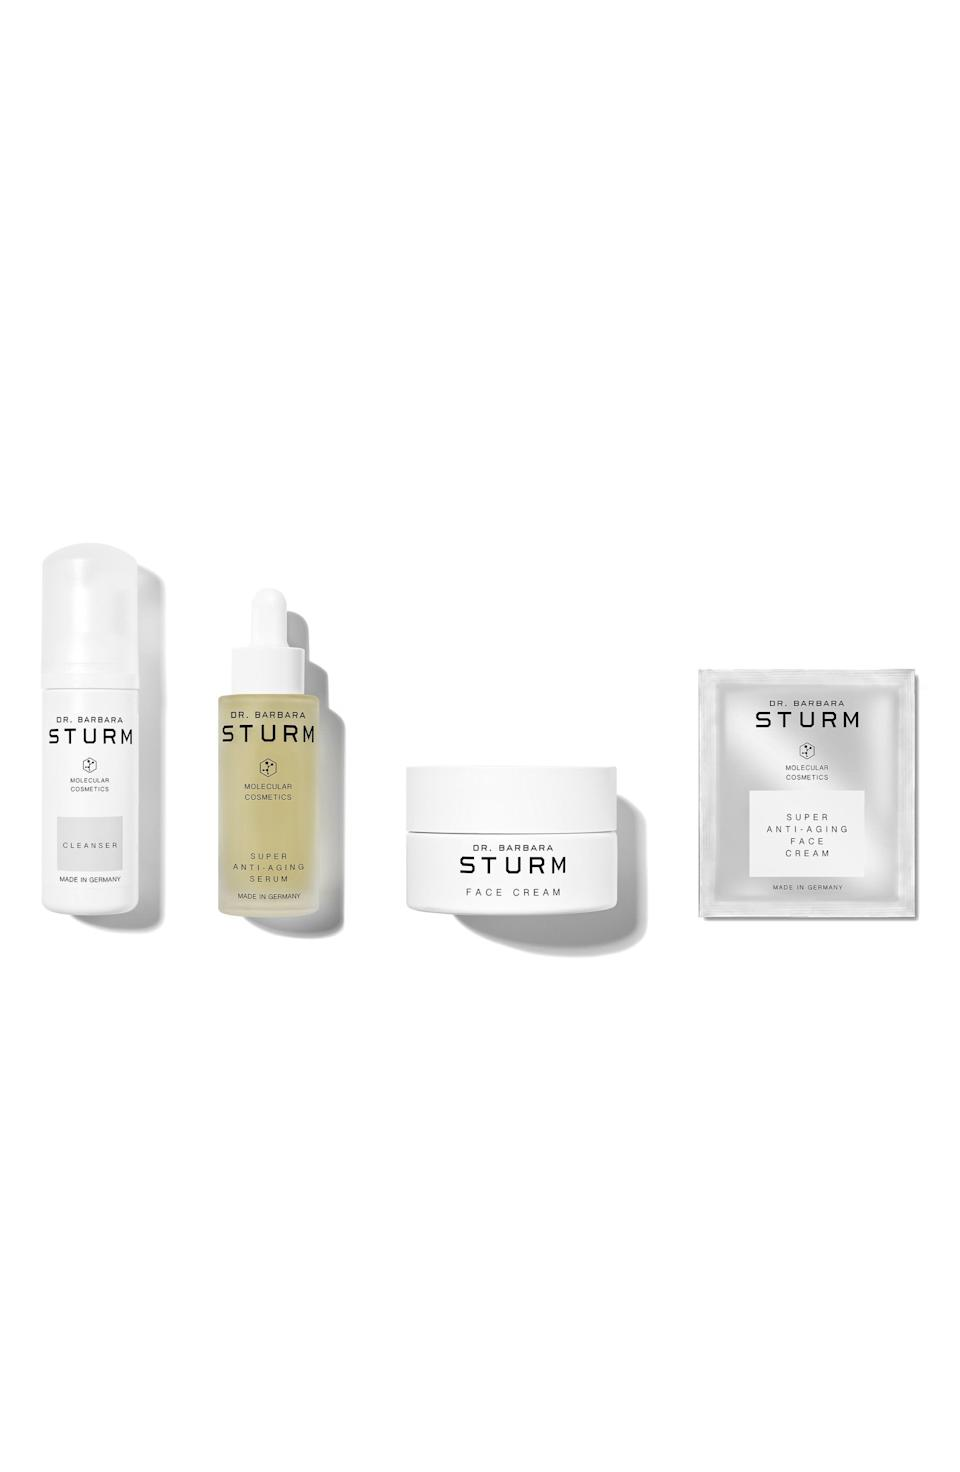 """<p><strong>Dr. Barbara Sturm</strong></p><p>nordstrom.com</p><p><strong>$275.00</strong></p><p><a href=""""https://go.redirectingat.com?id=74968X1596630&url=https%3A%2F%2Fwww.nordstrom.com%2Fs%2Fdr-barbara-sturm-super-anti-aging-serum-skin-care-set-455-value%2F5913794&sref=https%3A%2F%2Fwww.elle.com%2Fbeauty%2Fg36944650%2Fnorstrom-anniversary-beauty-sale-2021%2F"""" rel=""""nofollow noopener"""" target=""""_blank"""" data-ylk=""""slk:Shop Now"""" class=""""link rapid-noclick-resp"""">Shop Now</a></p><p>Just because aging is hard, doesn't mean it can't also be fun. Dr. Barbara Sturm makes skincare that all of your favorite celebrities are obsessed with, which means this is your change to actually get model skin.</p>"""